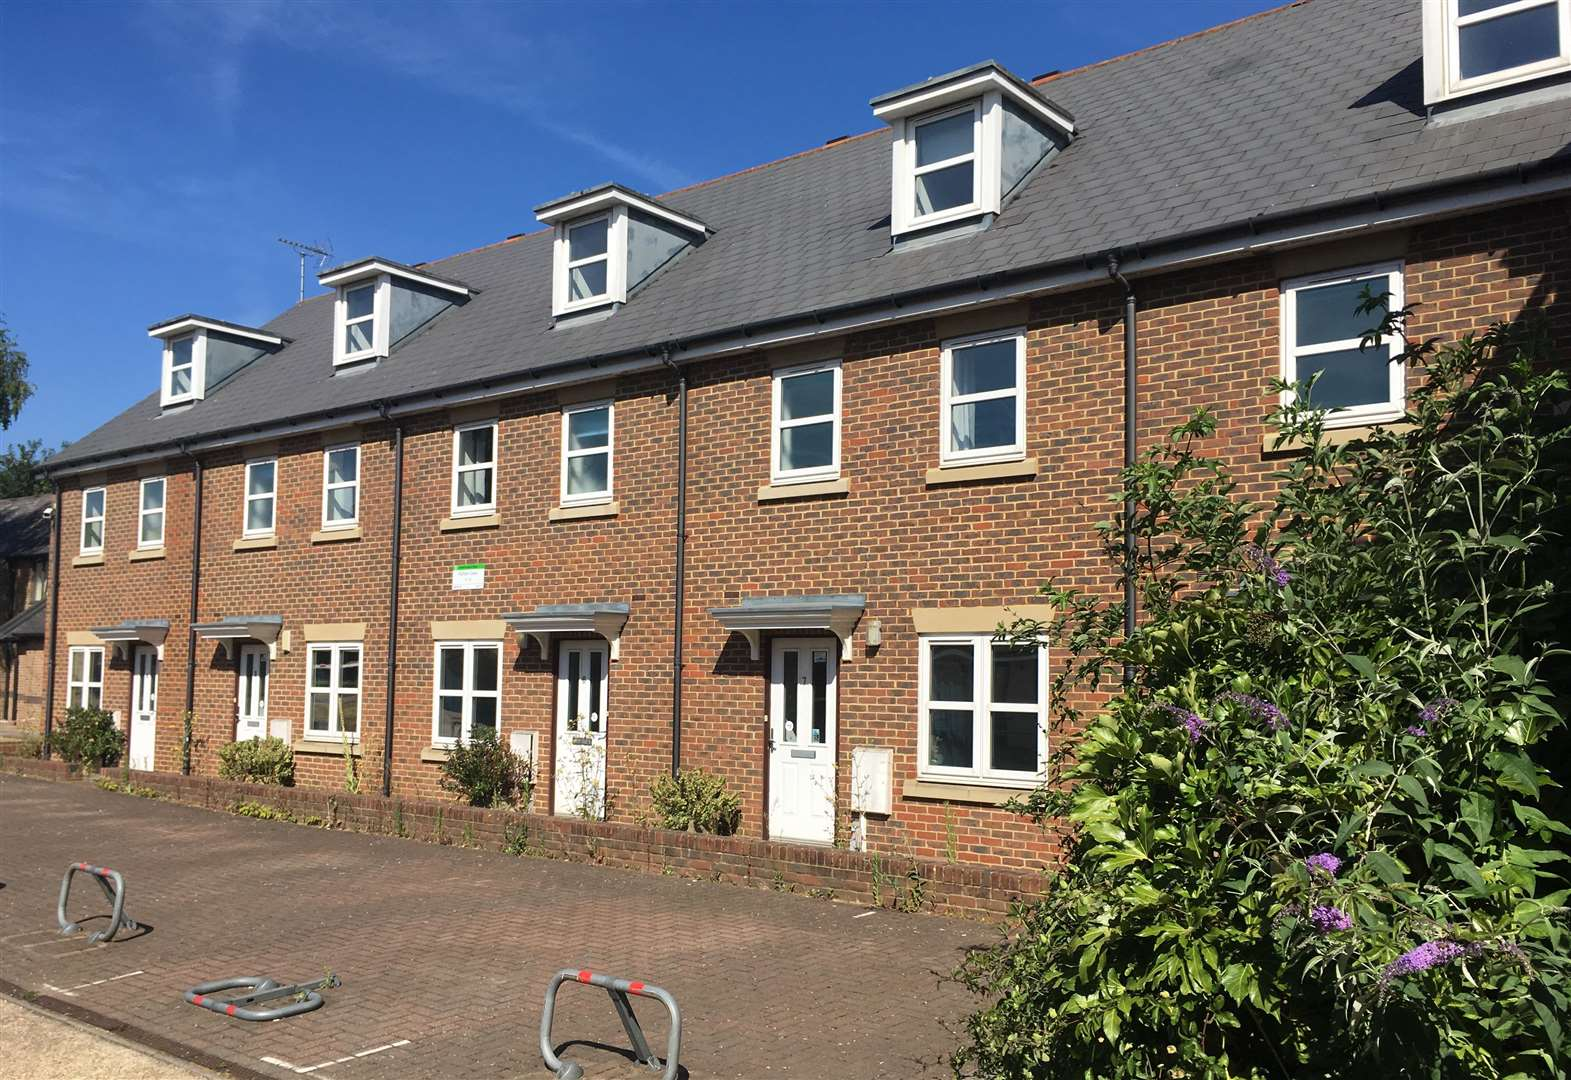 Wave of new council homes amid £23m boost